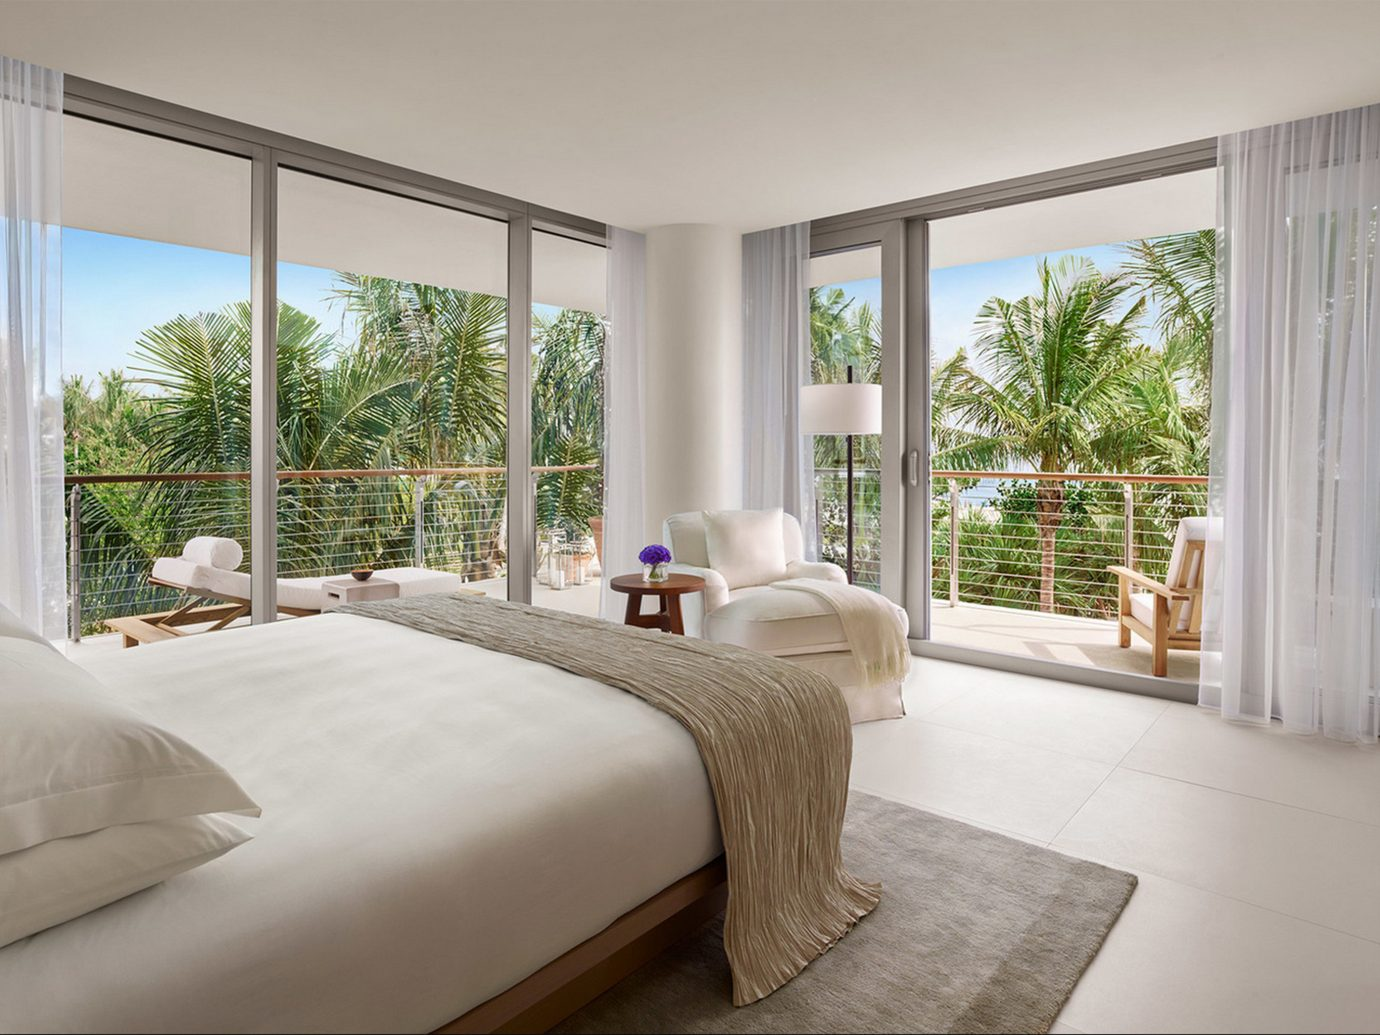 Bedroom at Miami EDITION